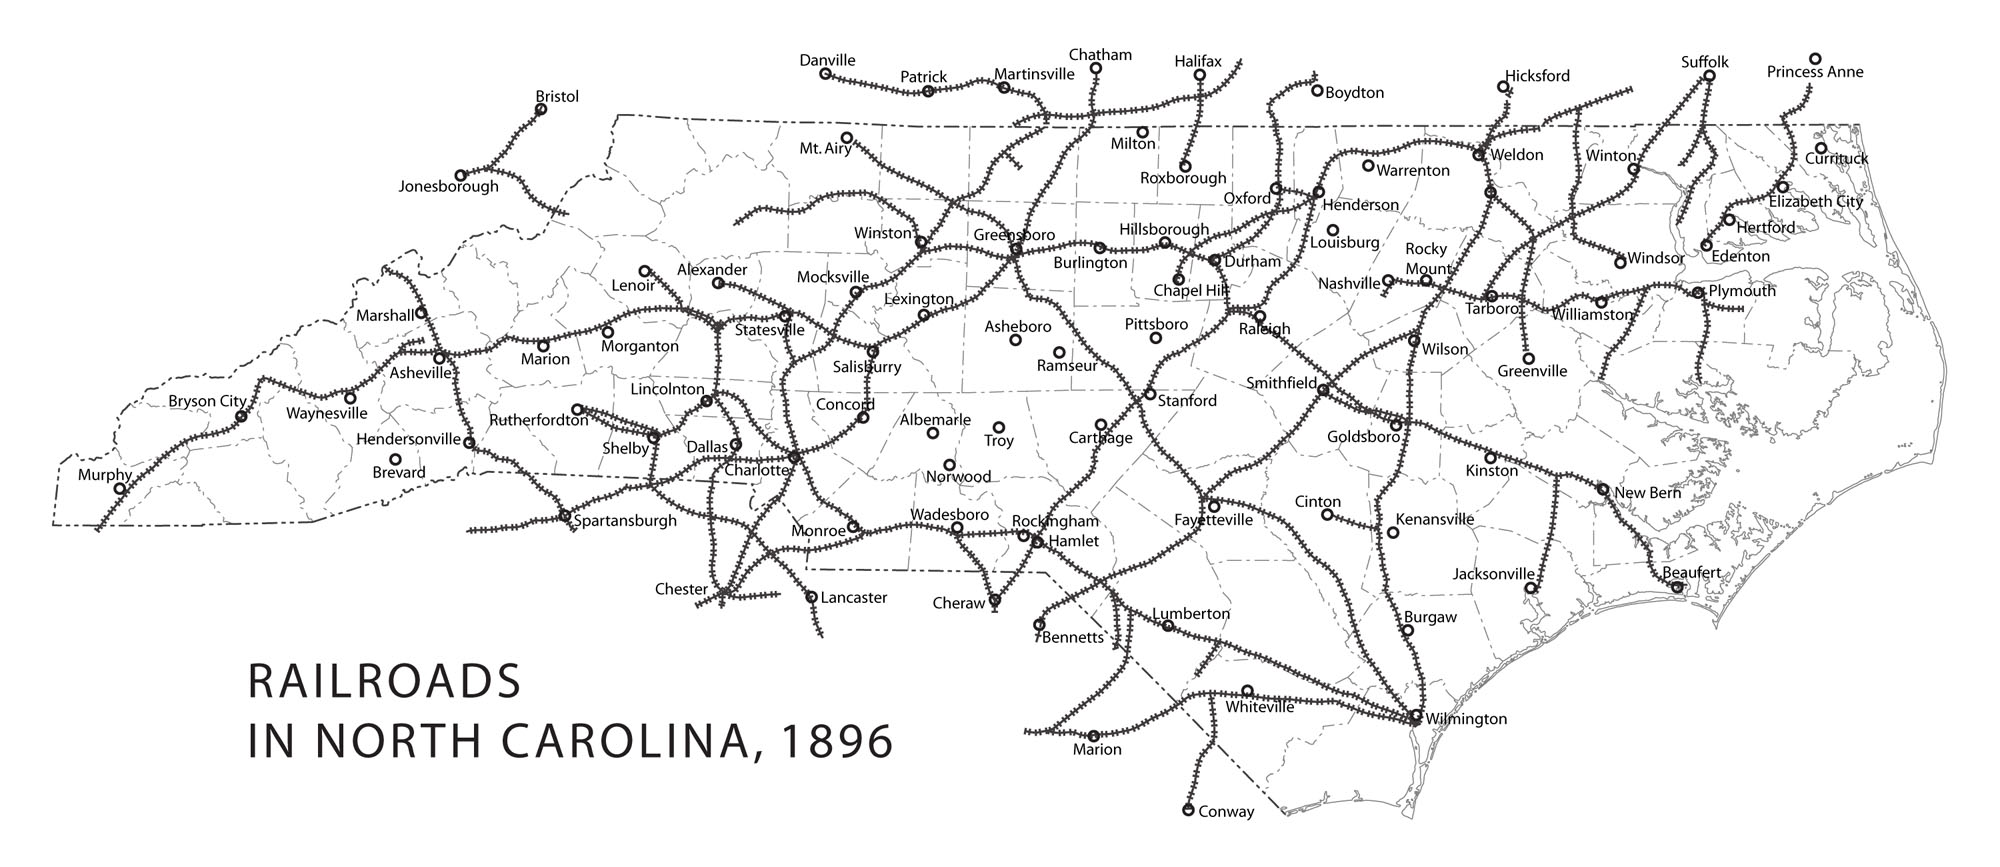 Railroads in North Carolina, 1896